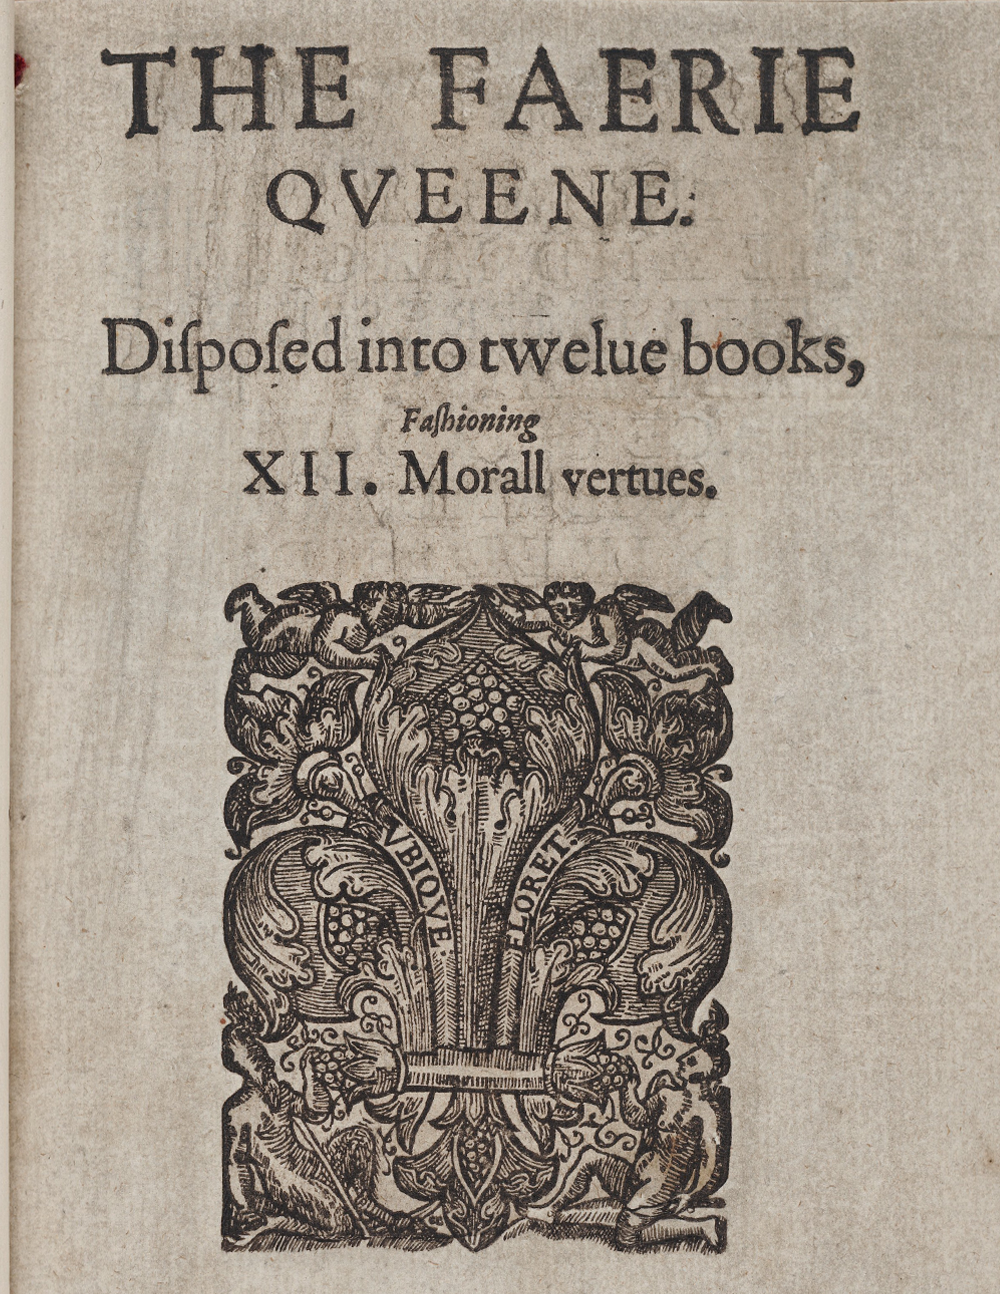 From Edmund Spenser,  The faerie queene : disposed into twelue bookes, fashioning XII morall vertues  (London, 1590).  Courtesy of the  Beinecke Rare Book and Manuscript Library .  Appears:  Writing